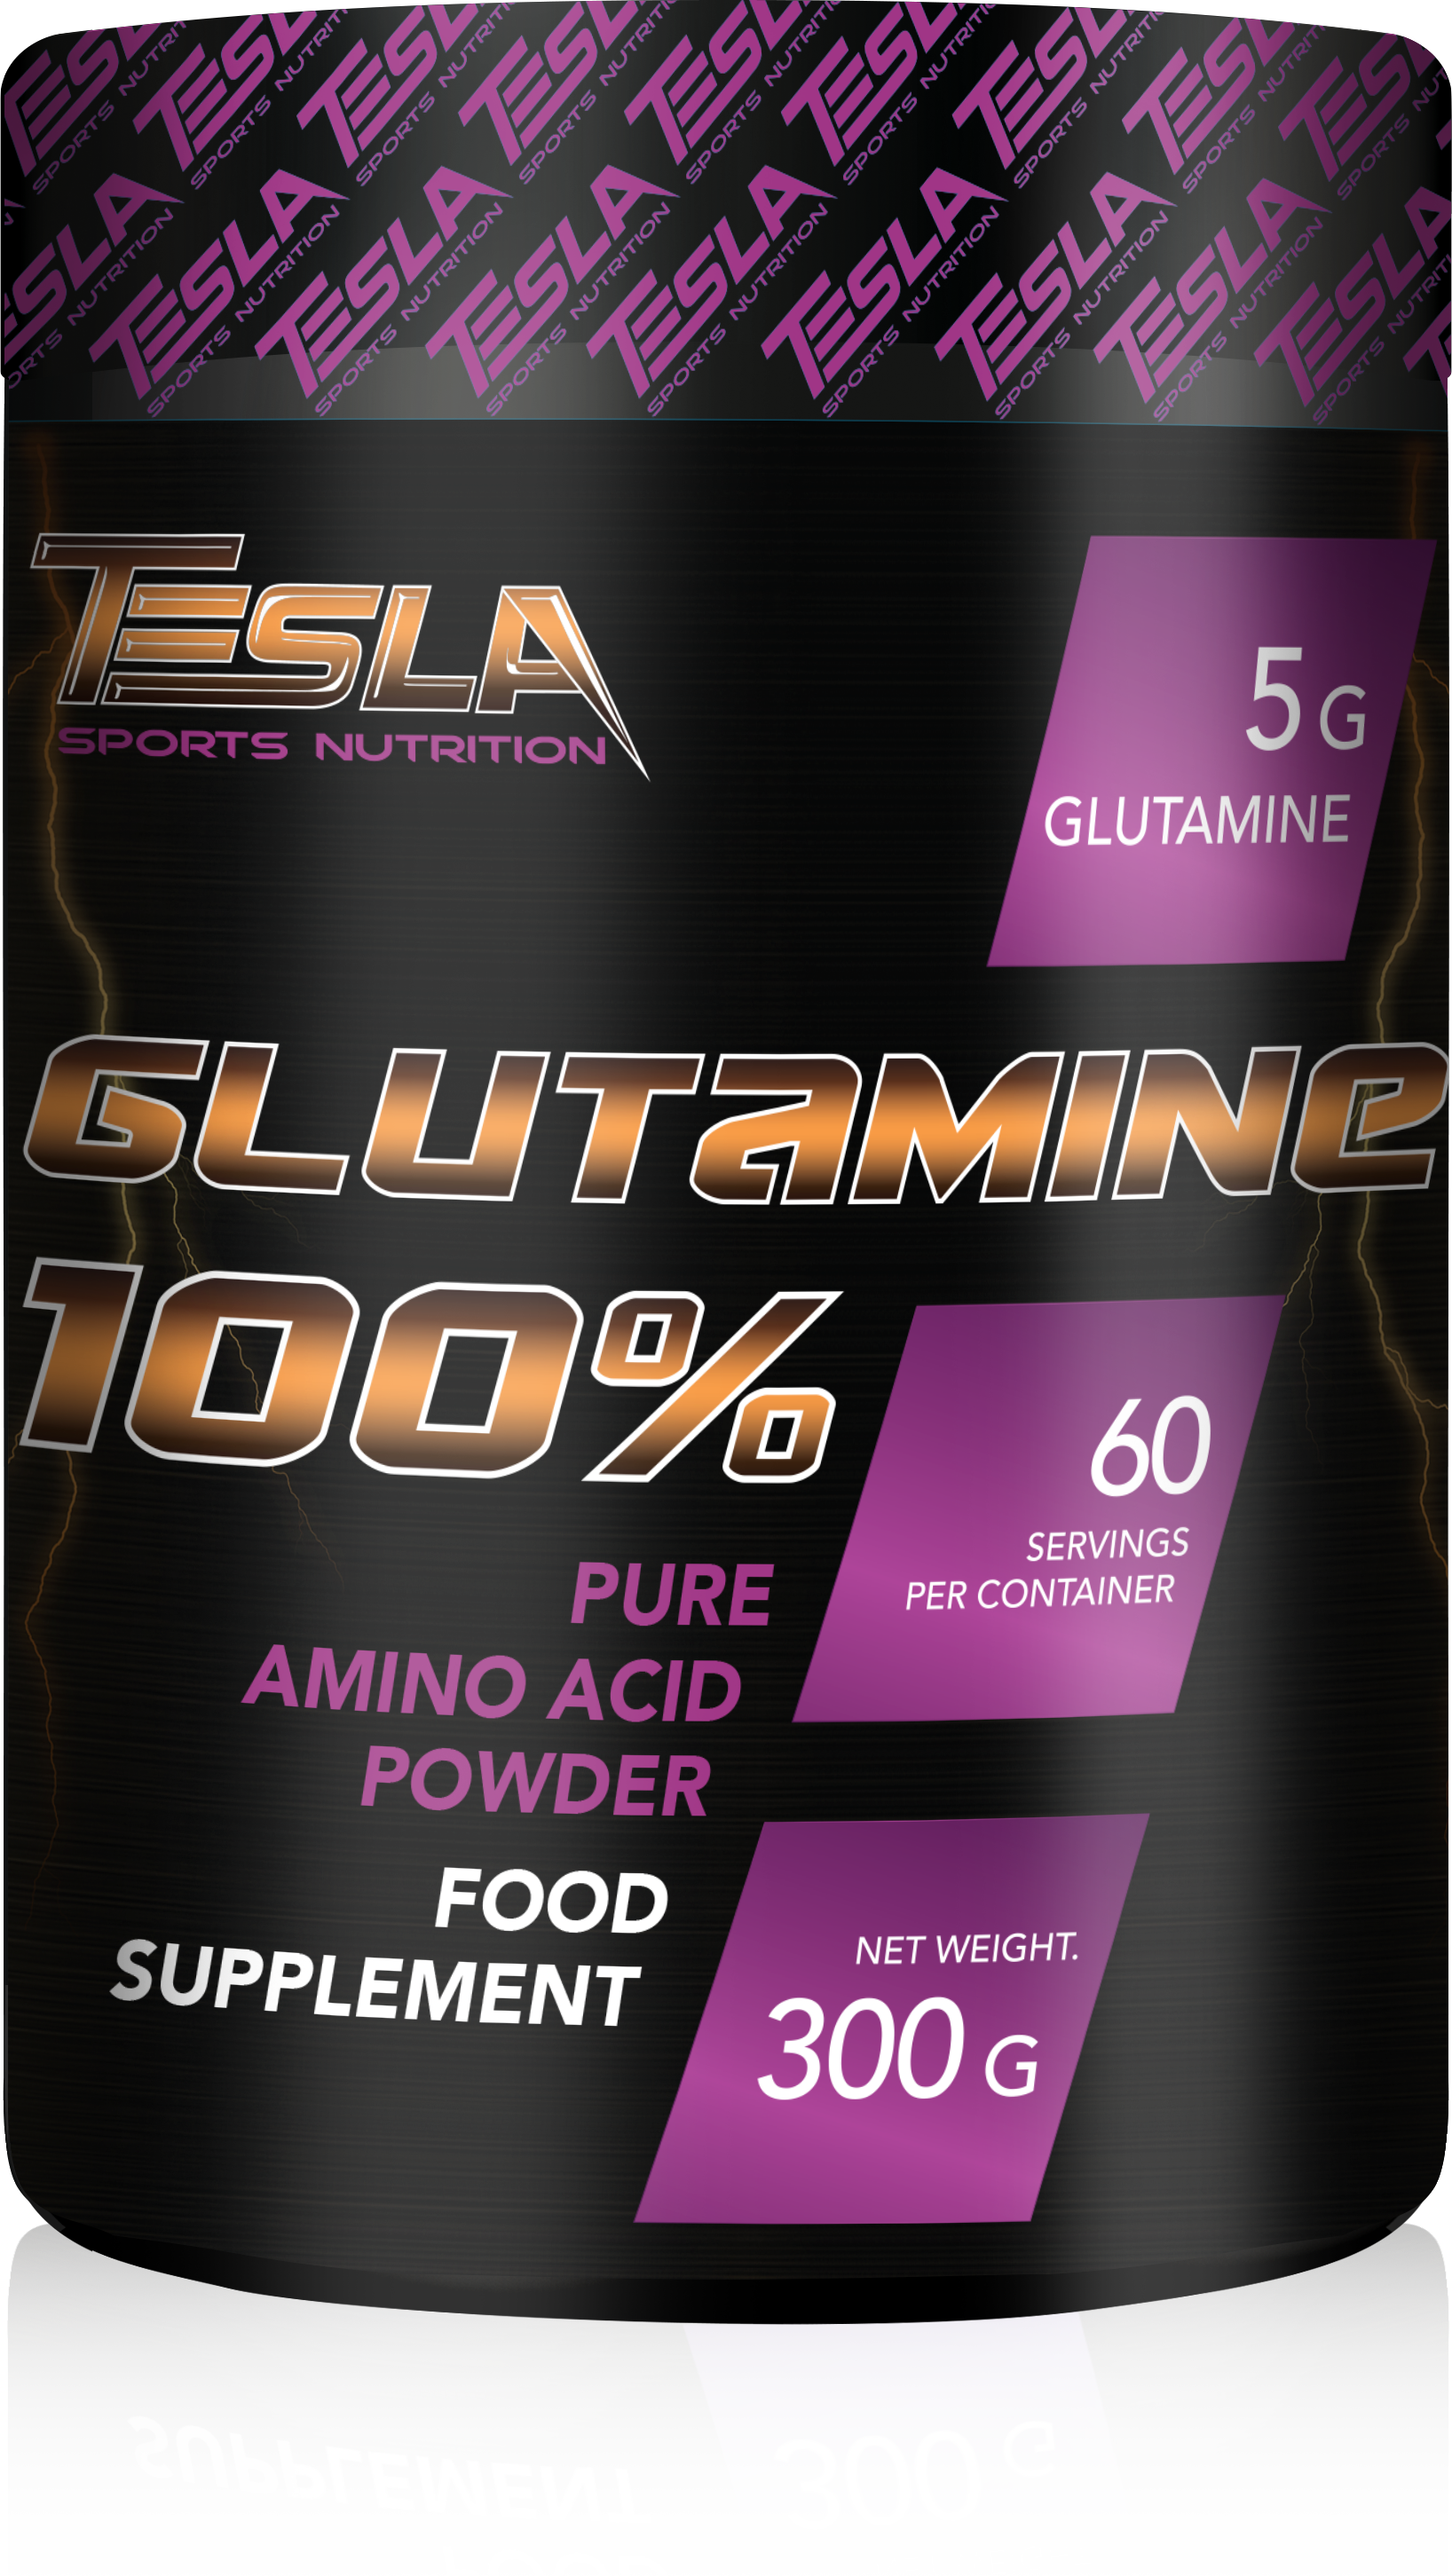 Tesla Glutamine 100% 60servings